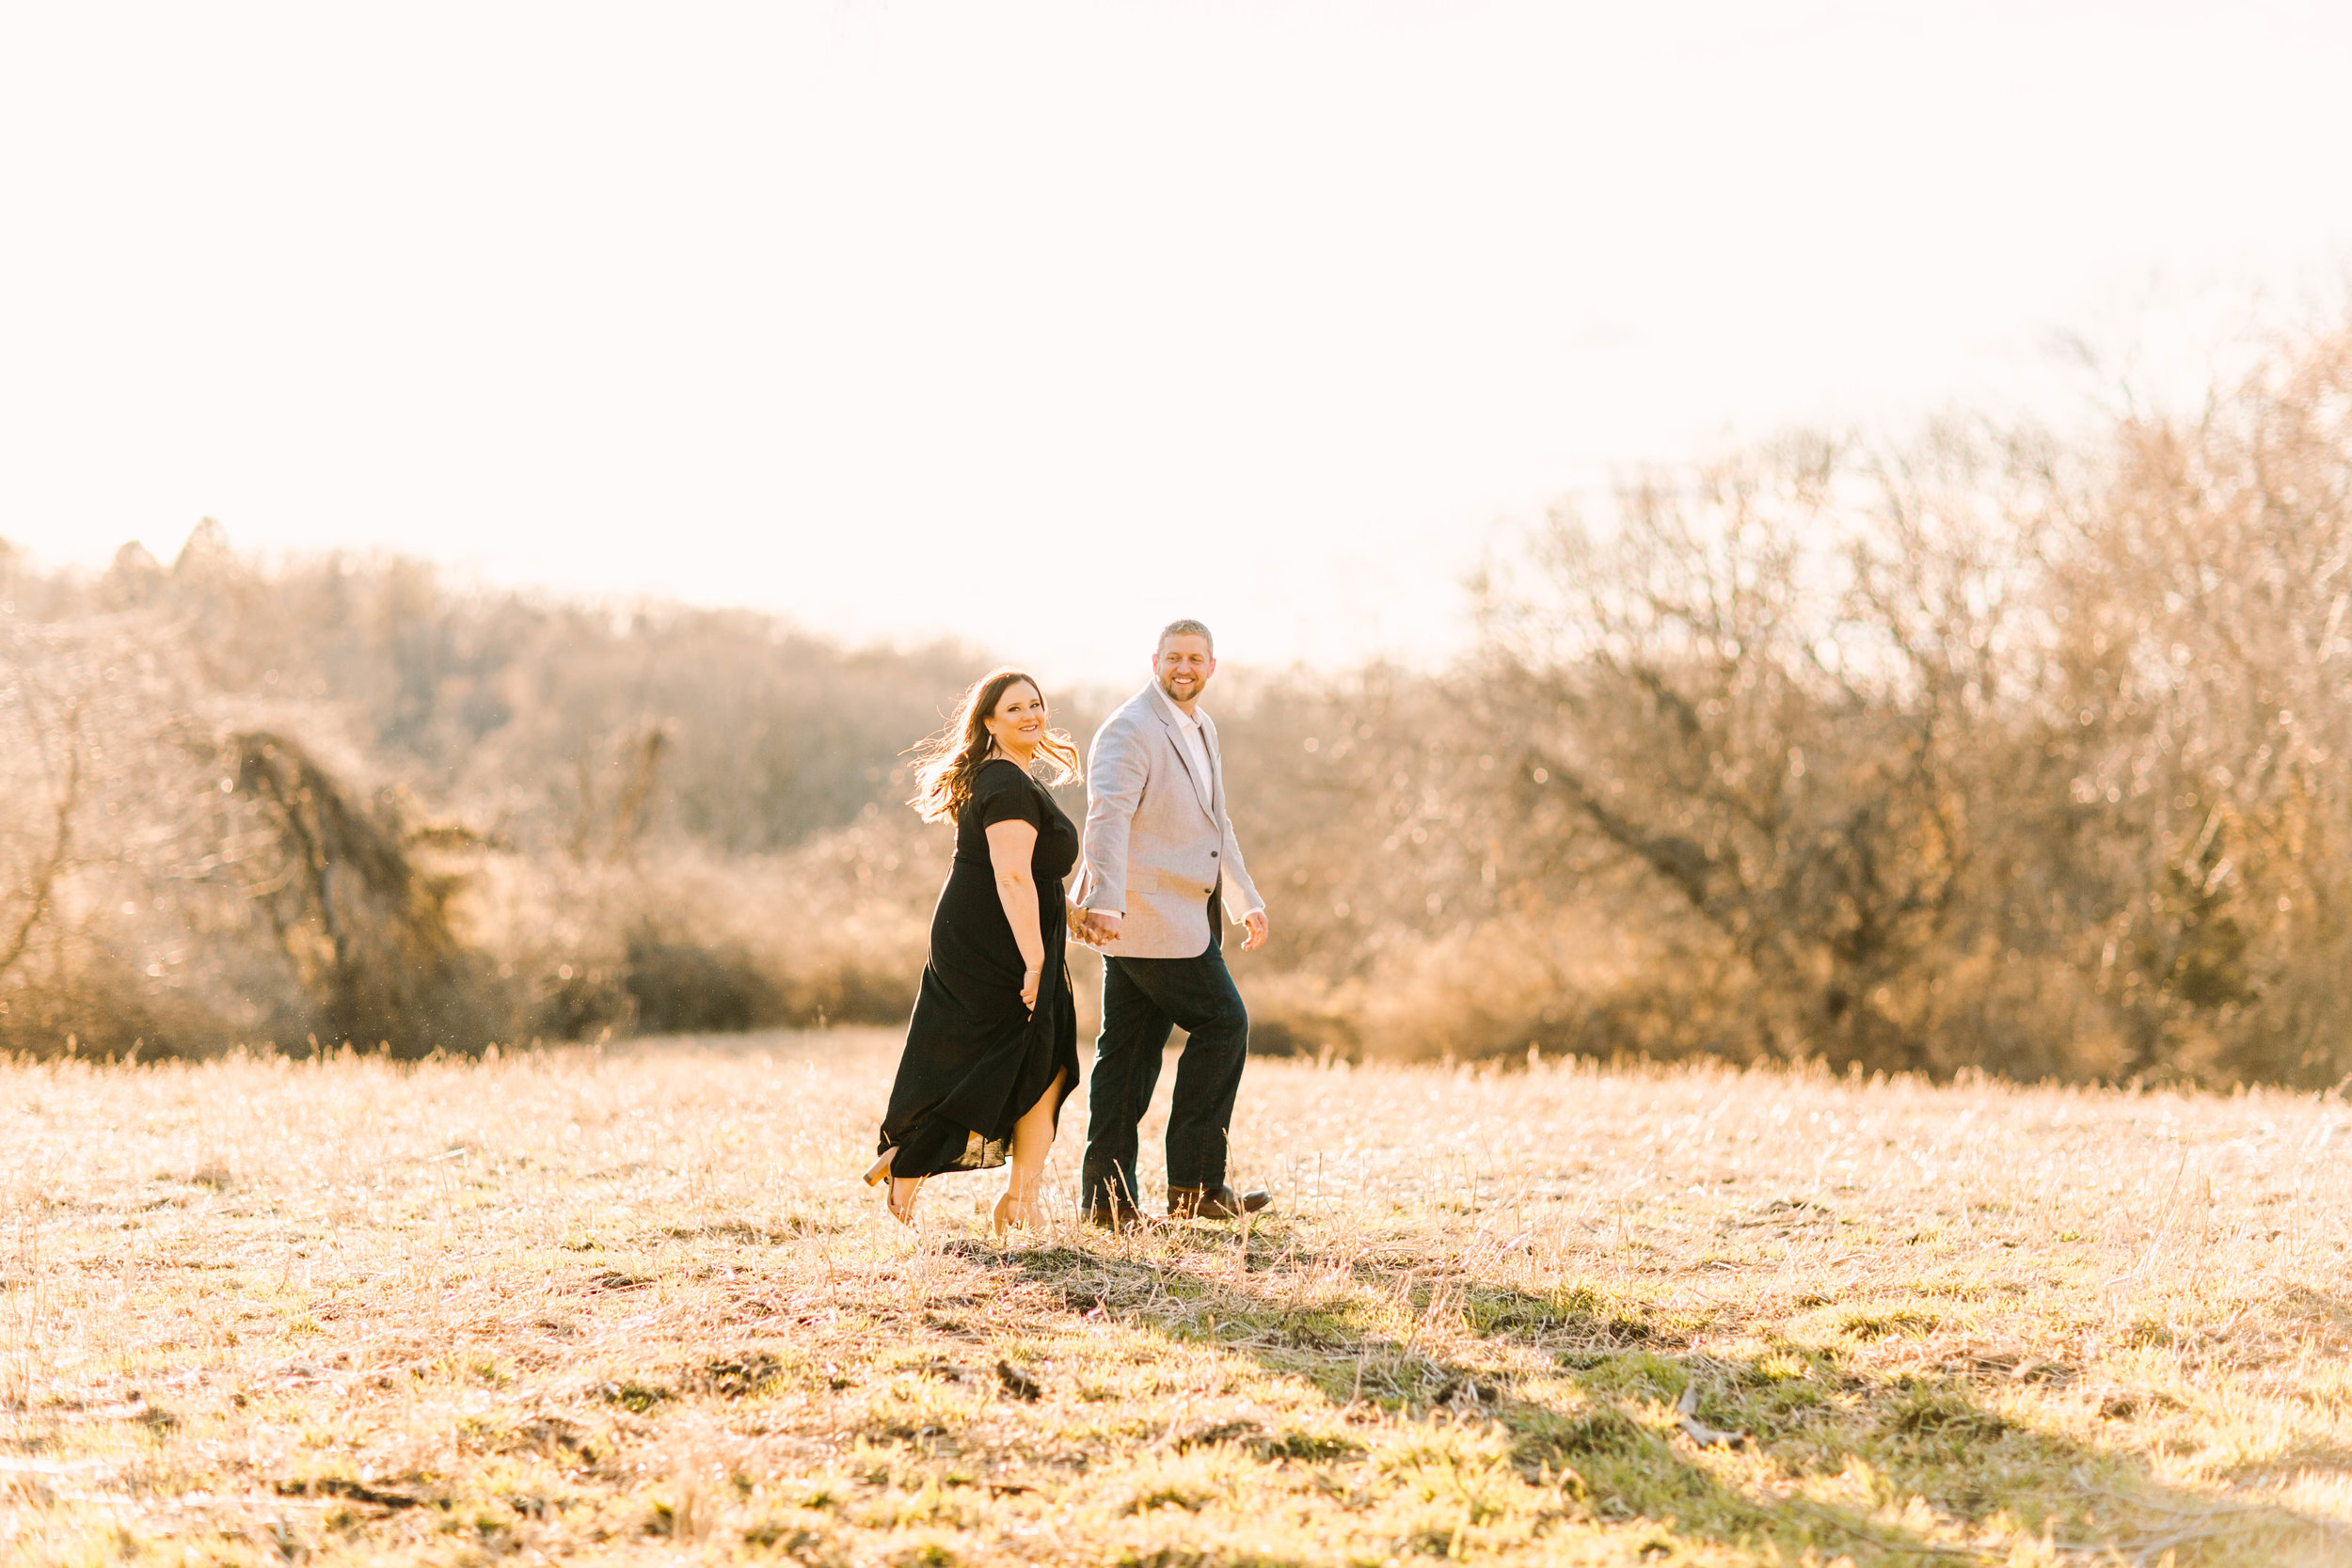 Veronica Young Photography, Spring engagement session, St. Louis wedding photographer